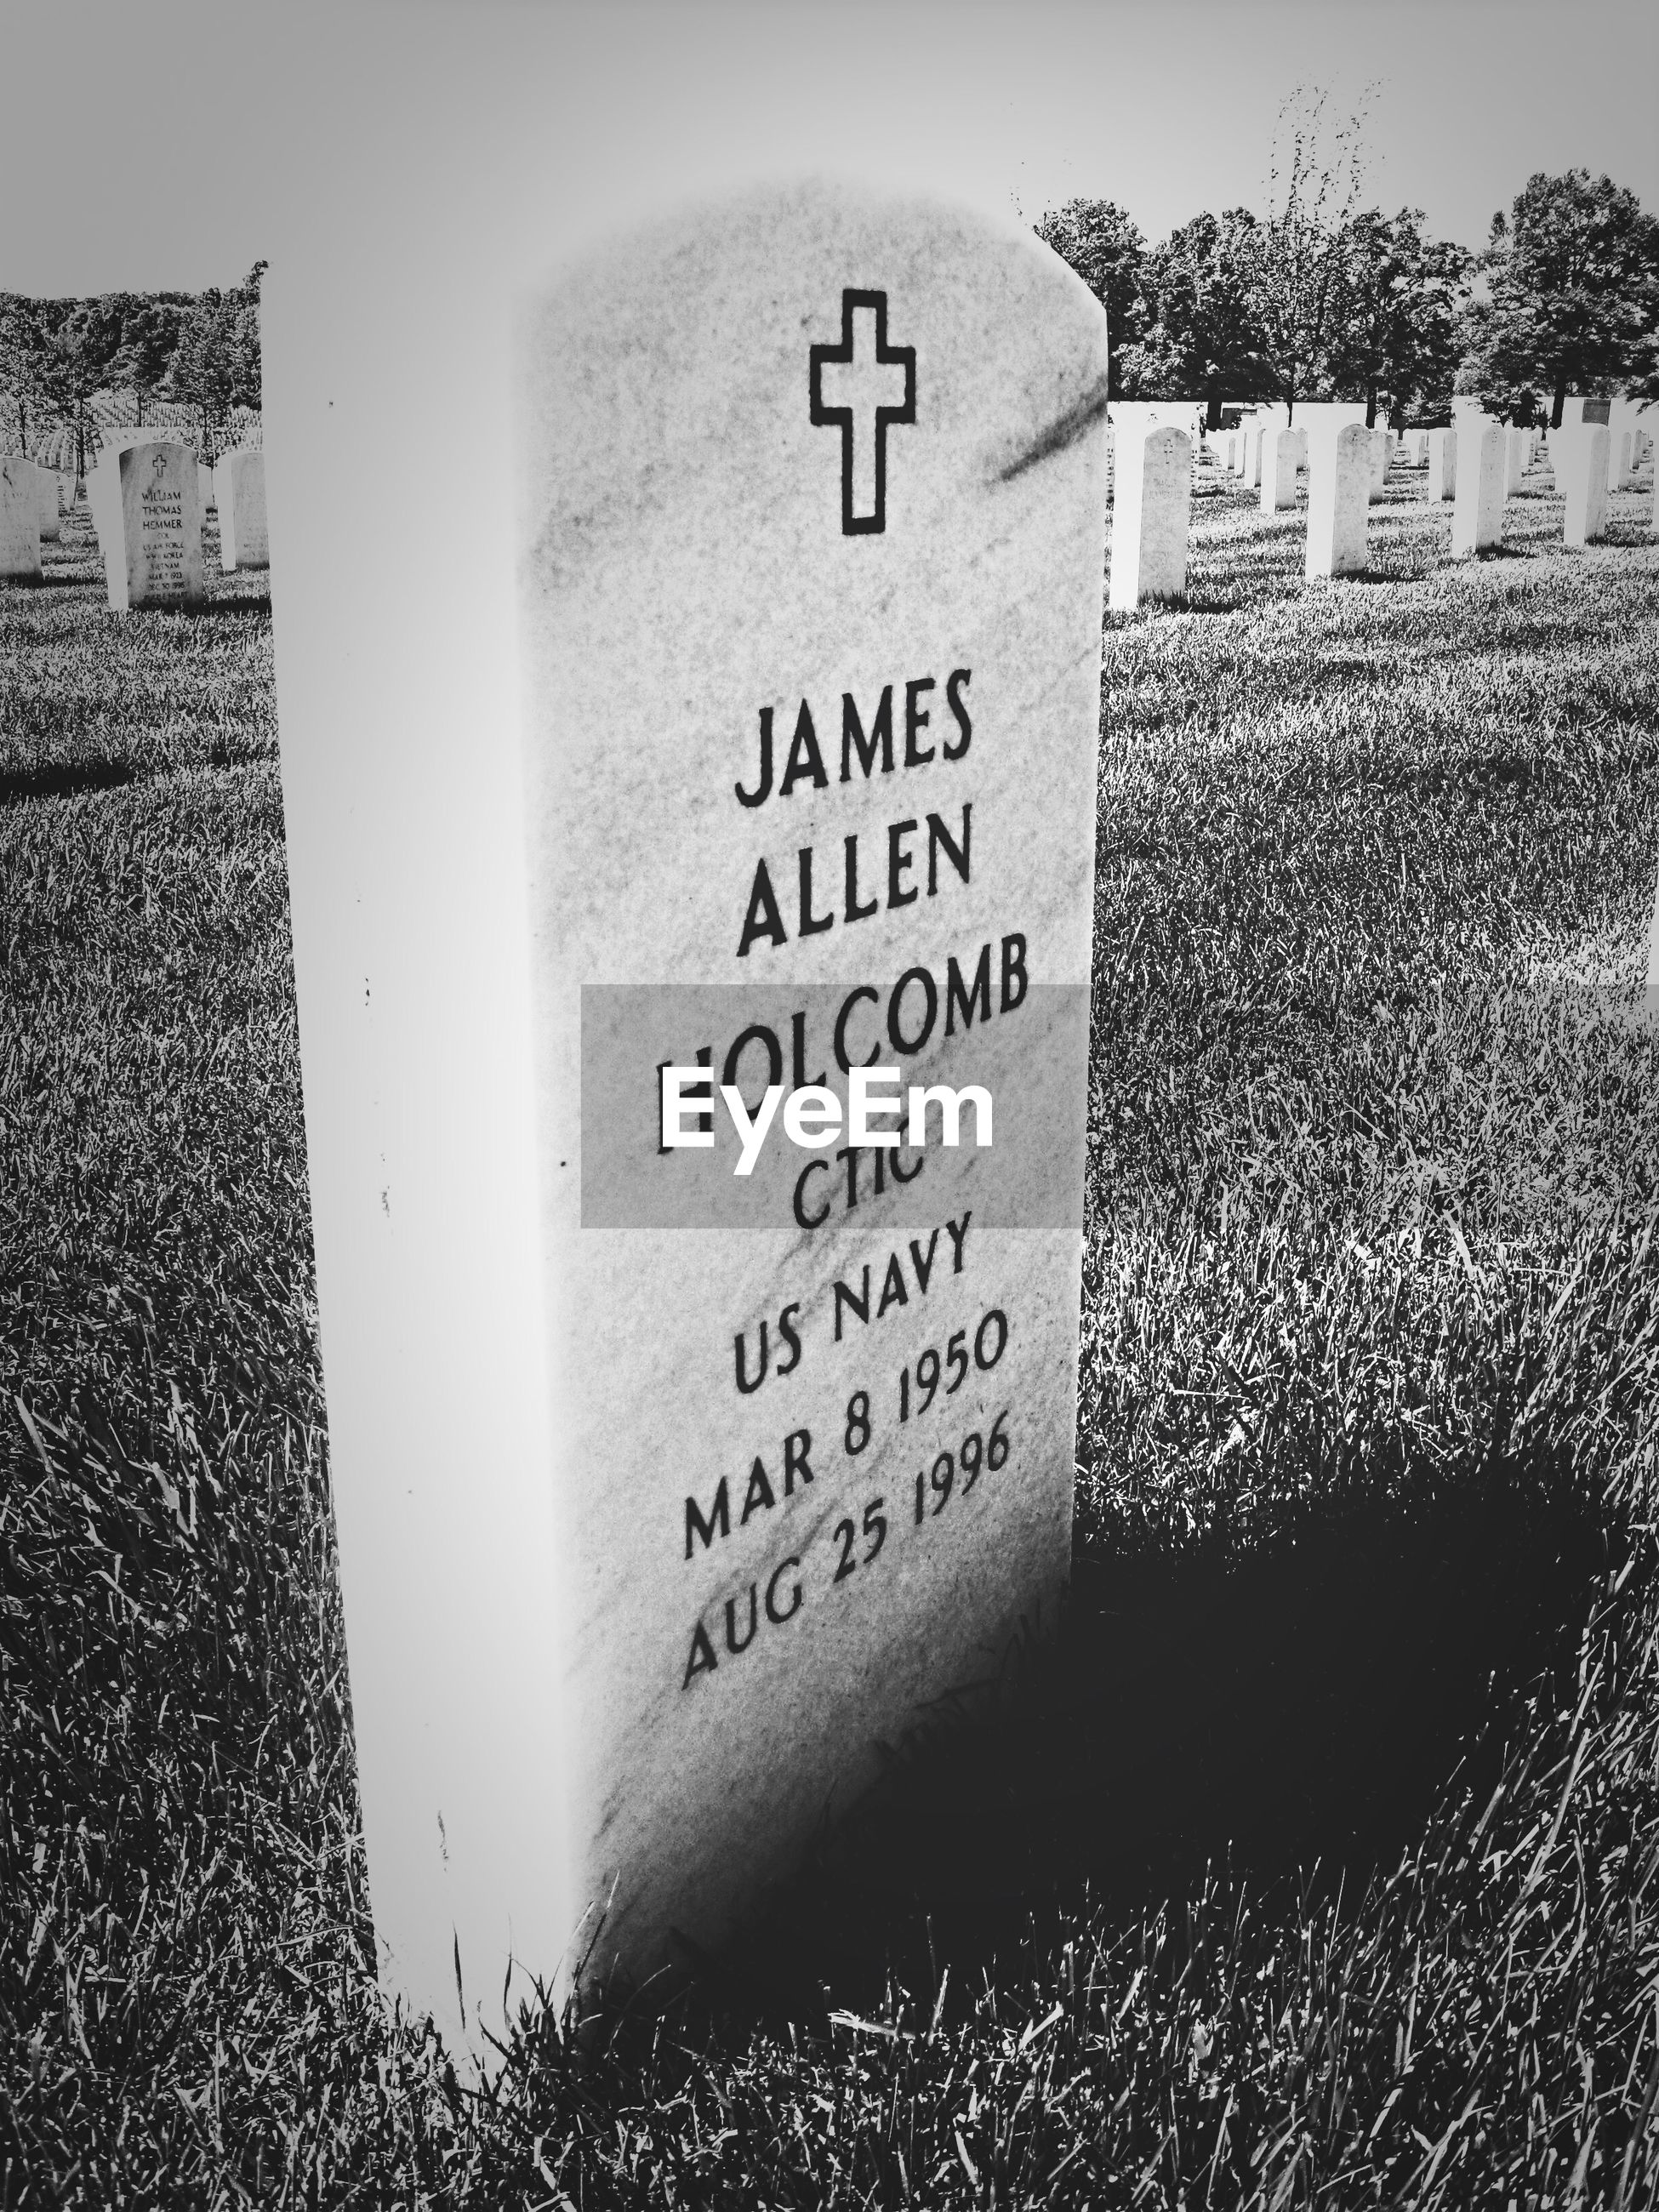 Text inscribed on tombstone at arlington national cemetery